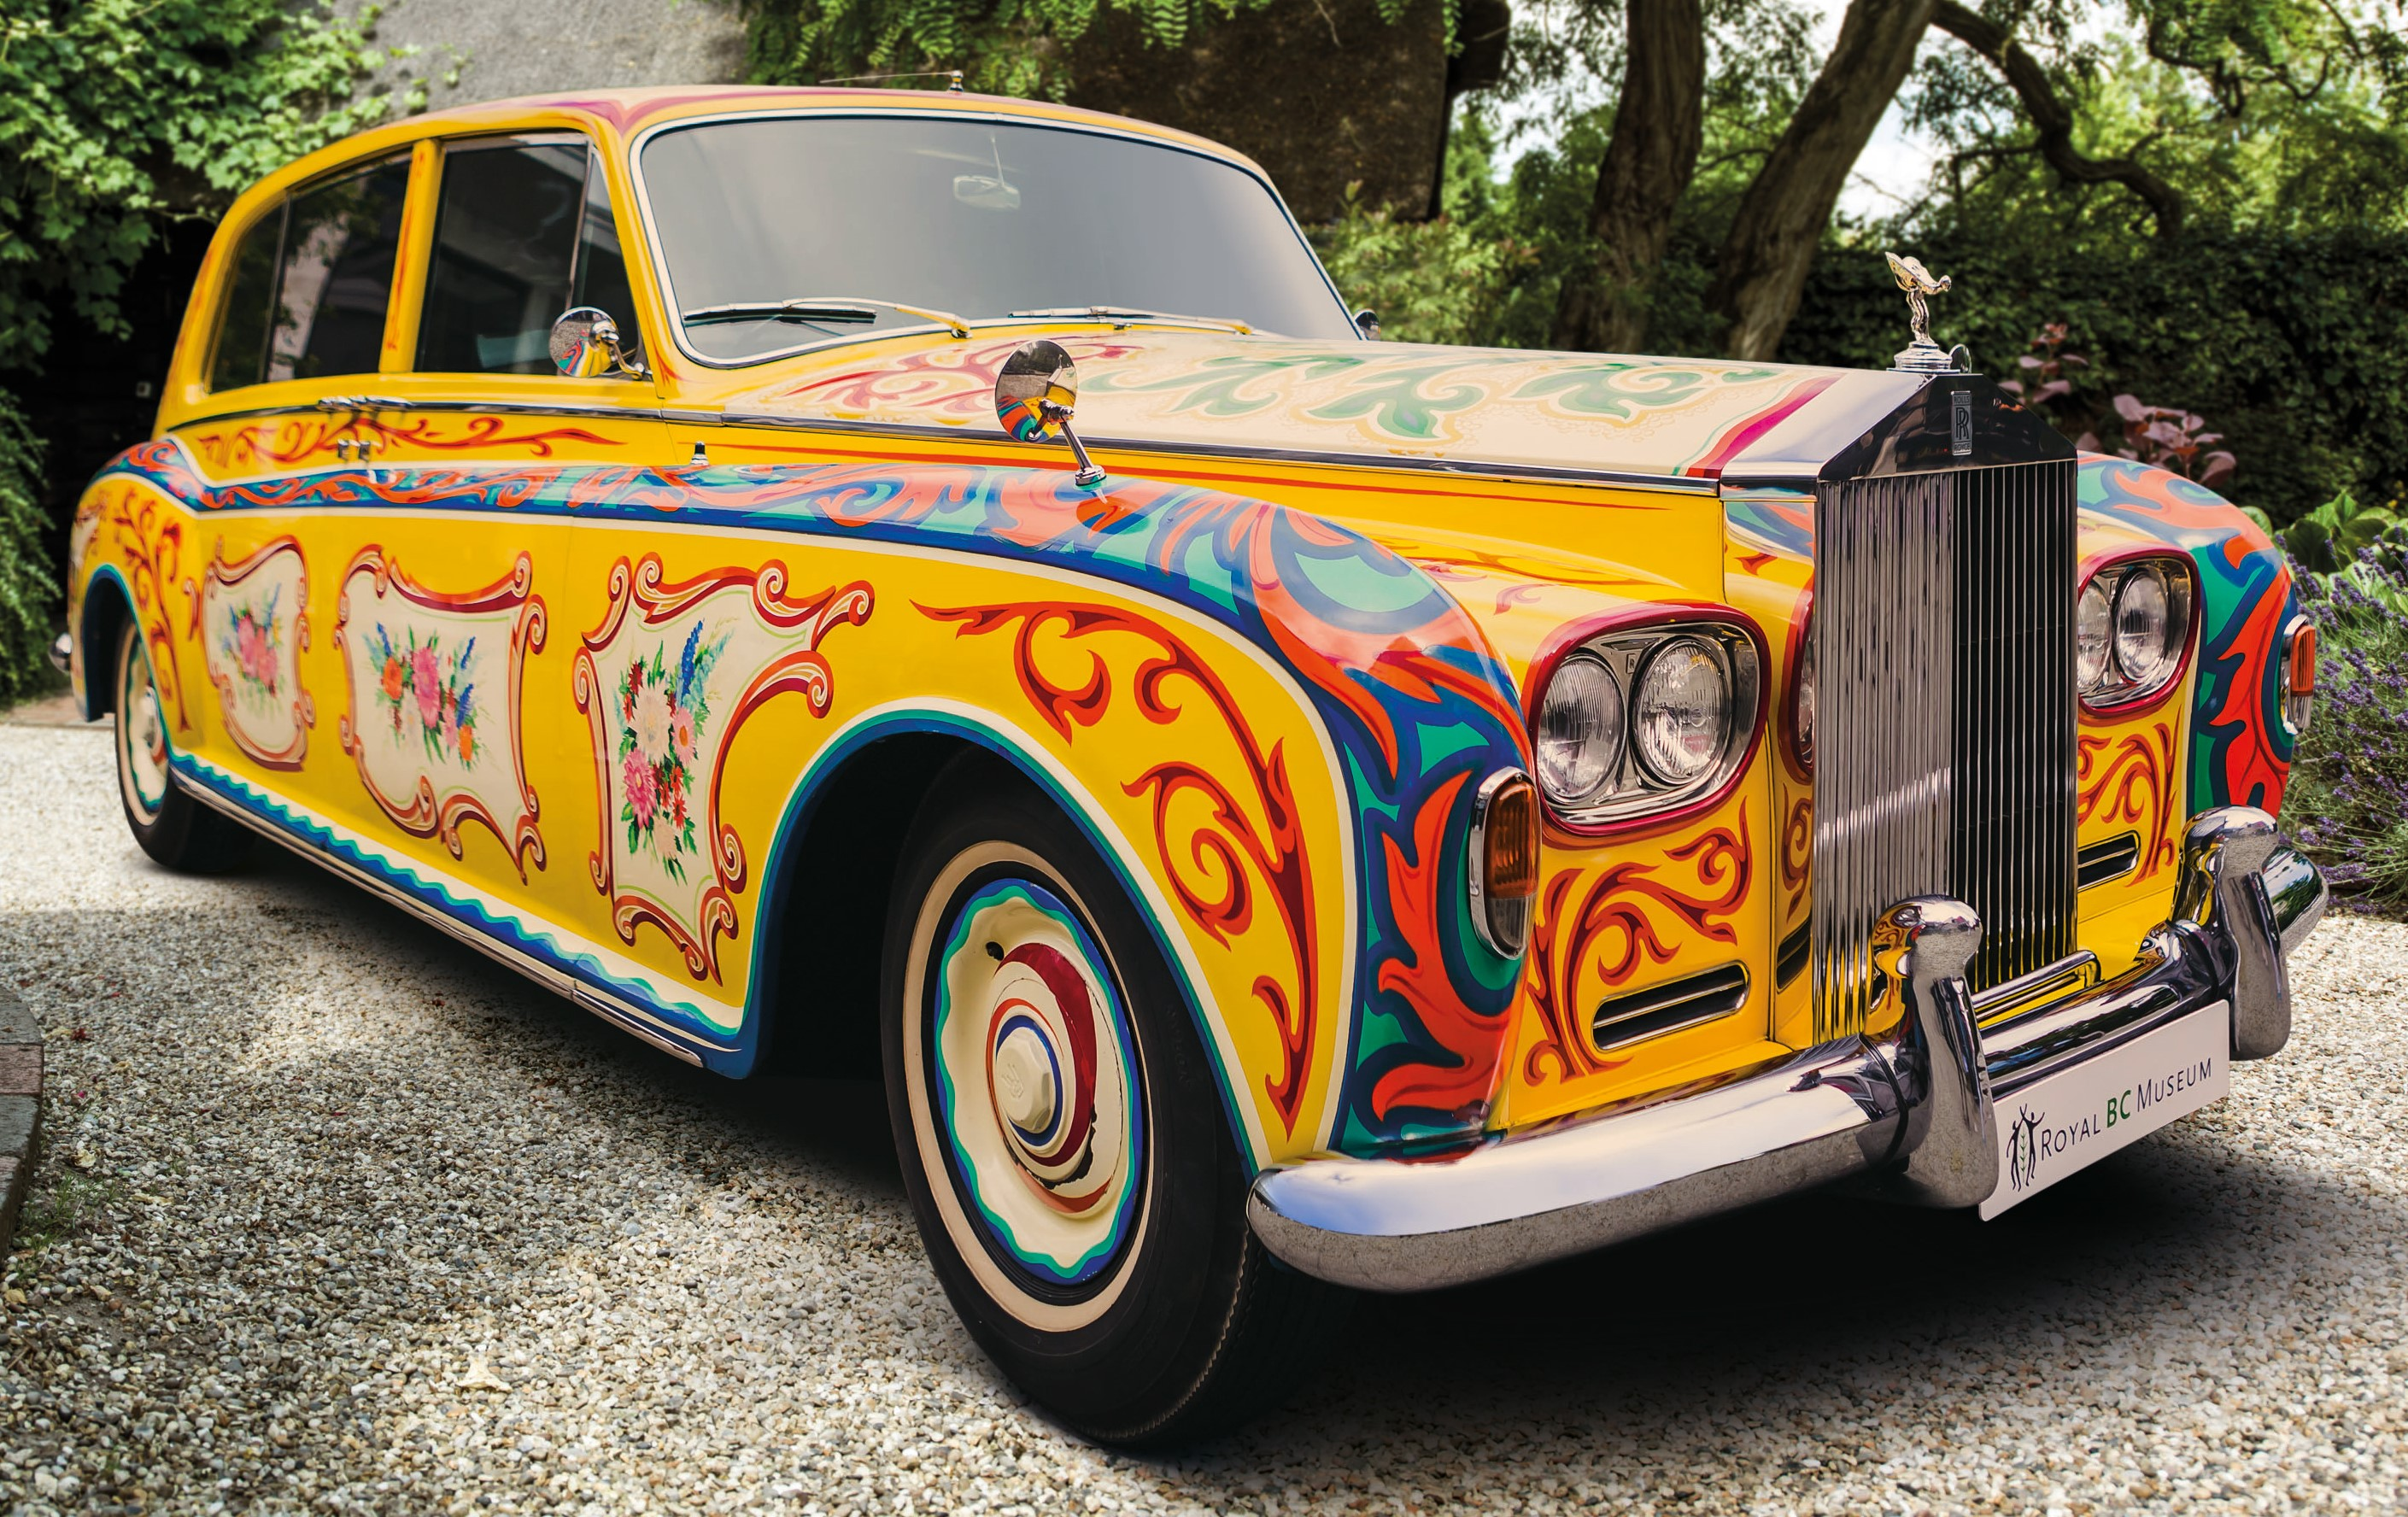 The John Lennon S Rolls Royce Will Be Joining The Great Eight Phantoms Exhibition Myautoworld Com